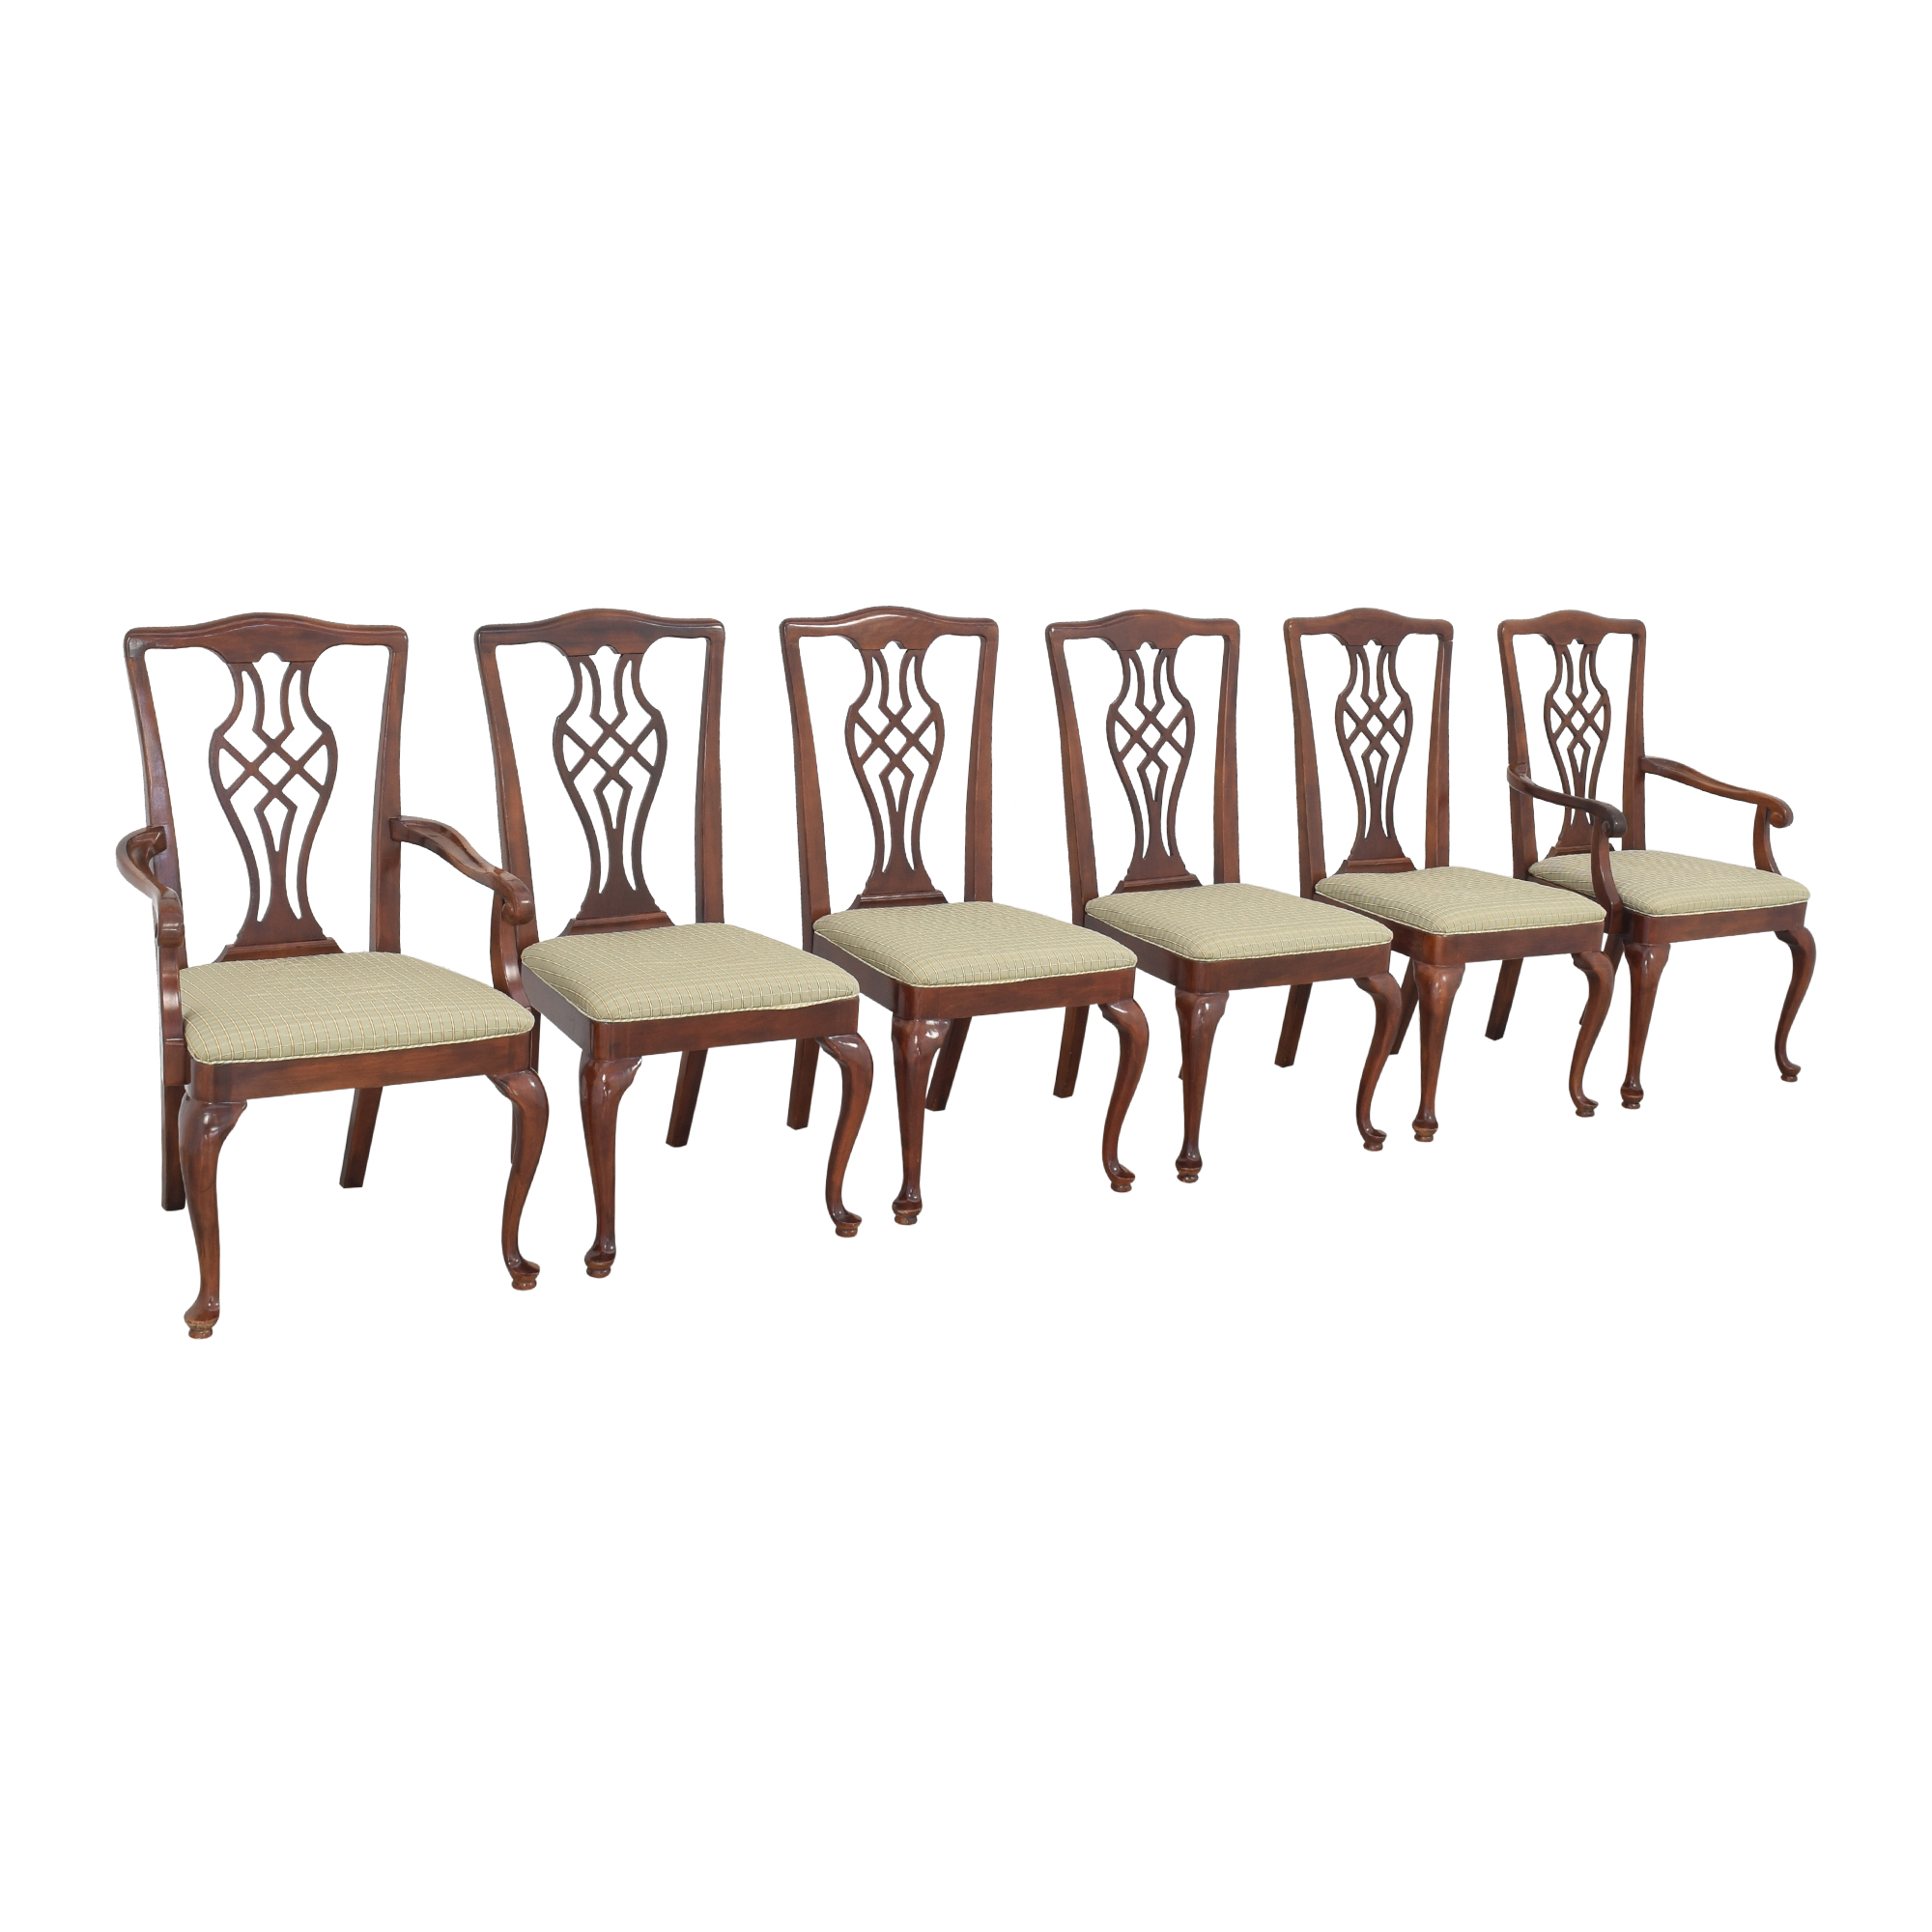 shop Drexel Upholstered Dining Chairs Drexel Heritage Dining Chairs